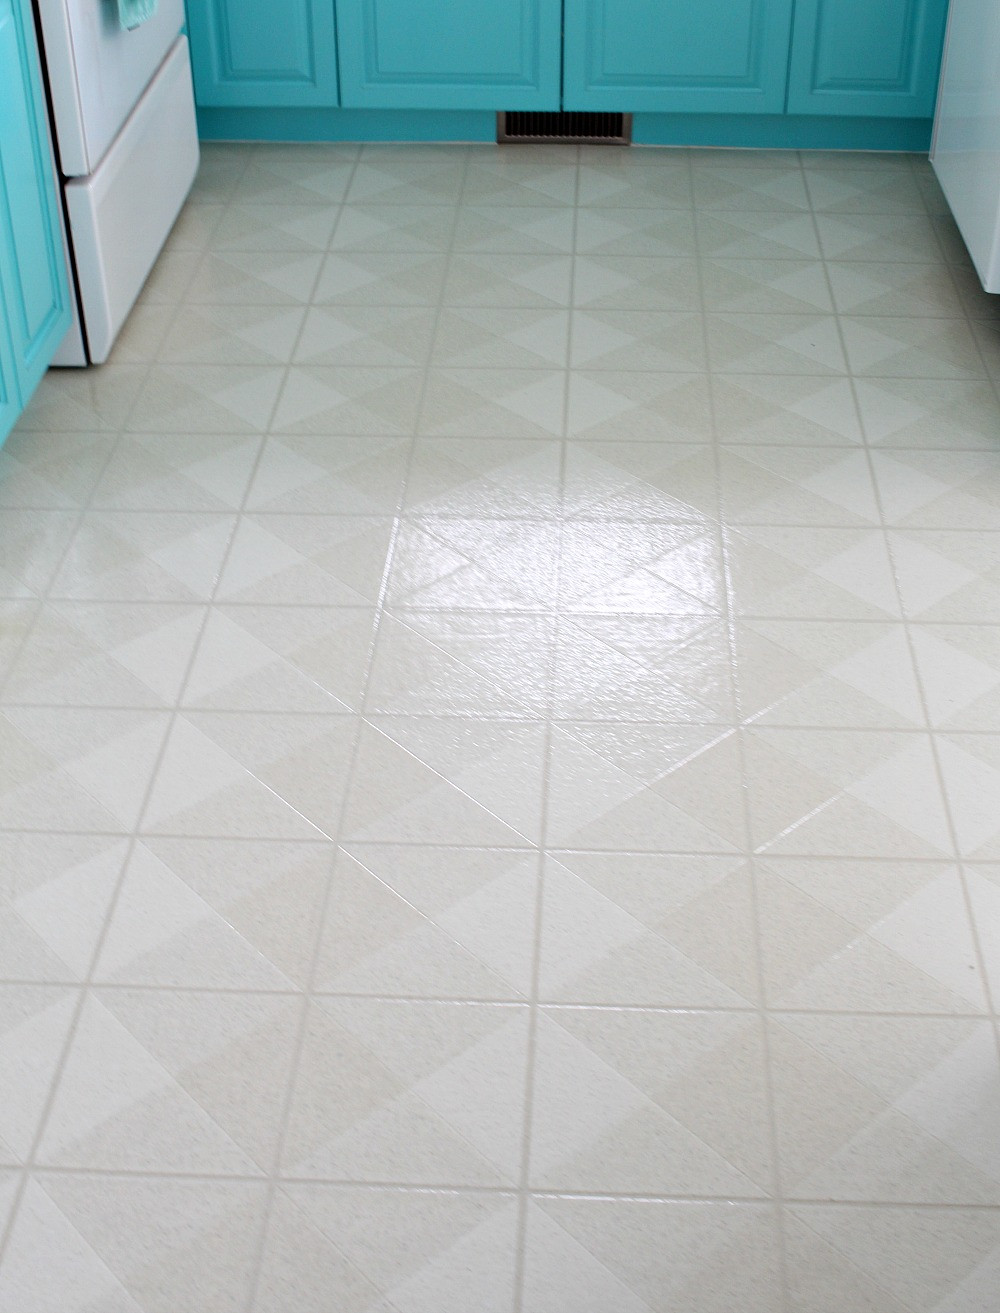 Best ideas about DIY Vinyl Flooring . Save or Pin How to Paint a Vinyl Floor DIY Painted Floors Now.